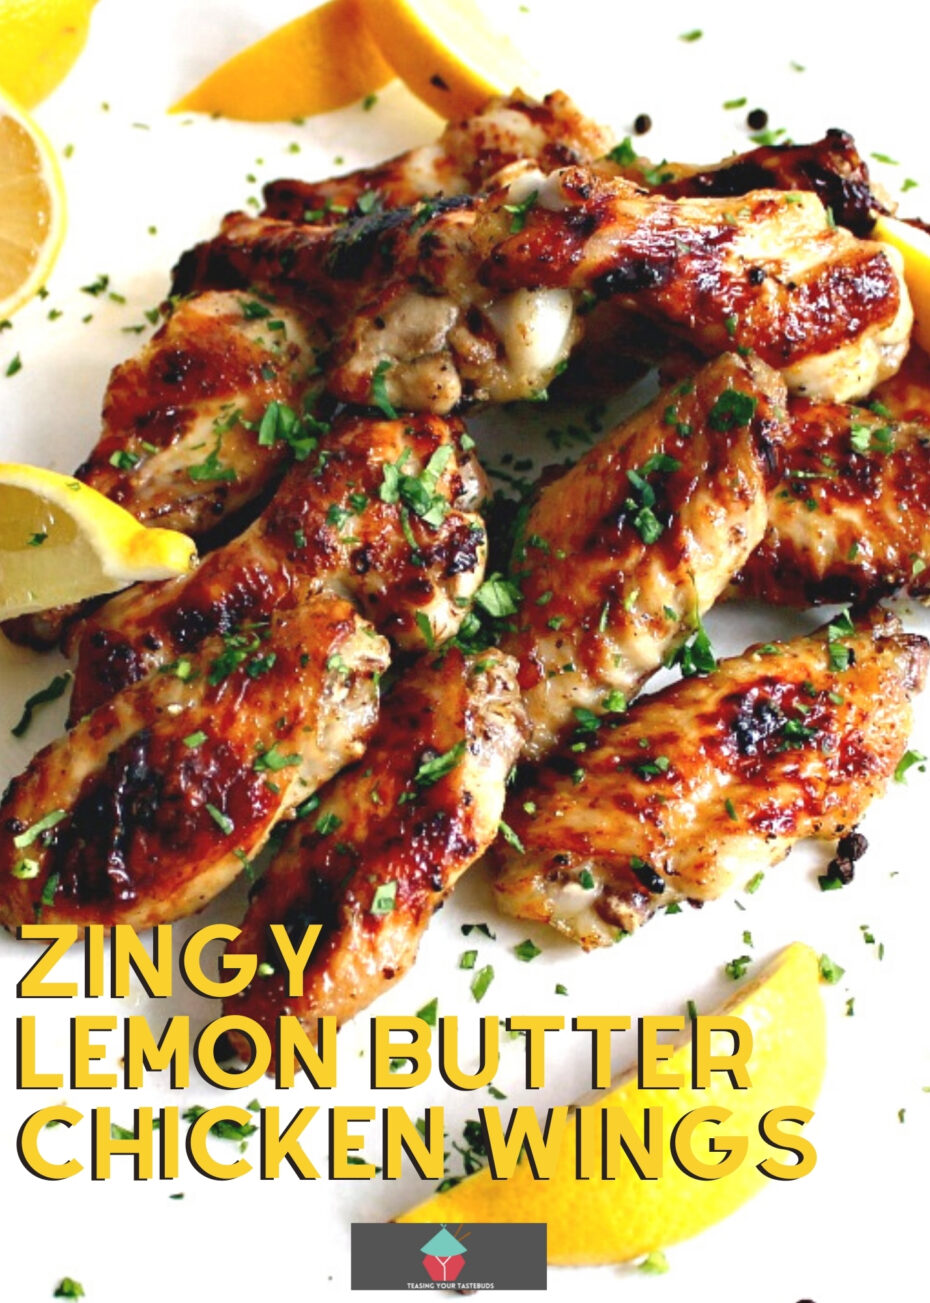 Zingy Lemon Butter Chicken Wings. These are lovely baked chicken wings with a zingy lemon flavor. Easy recipe, baked and oh so good!